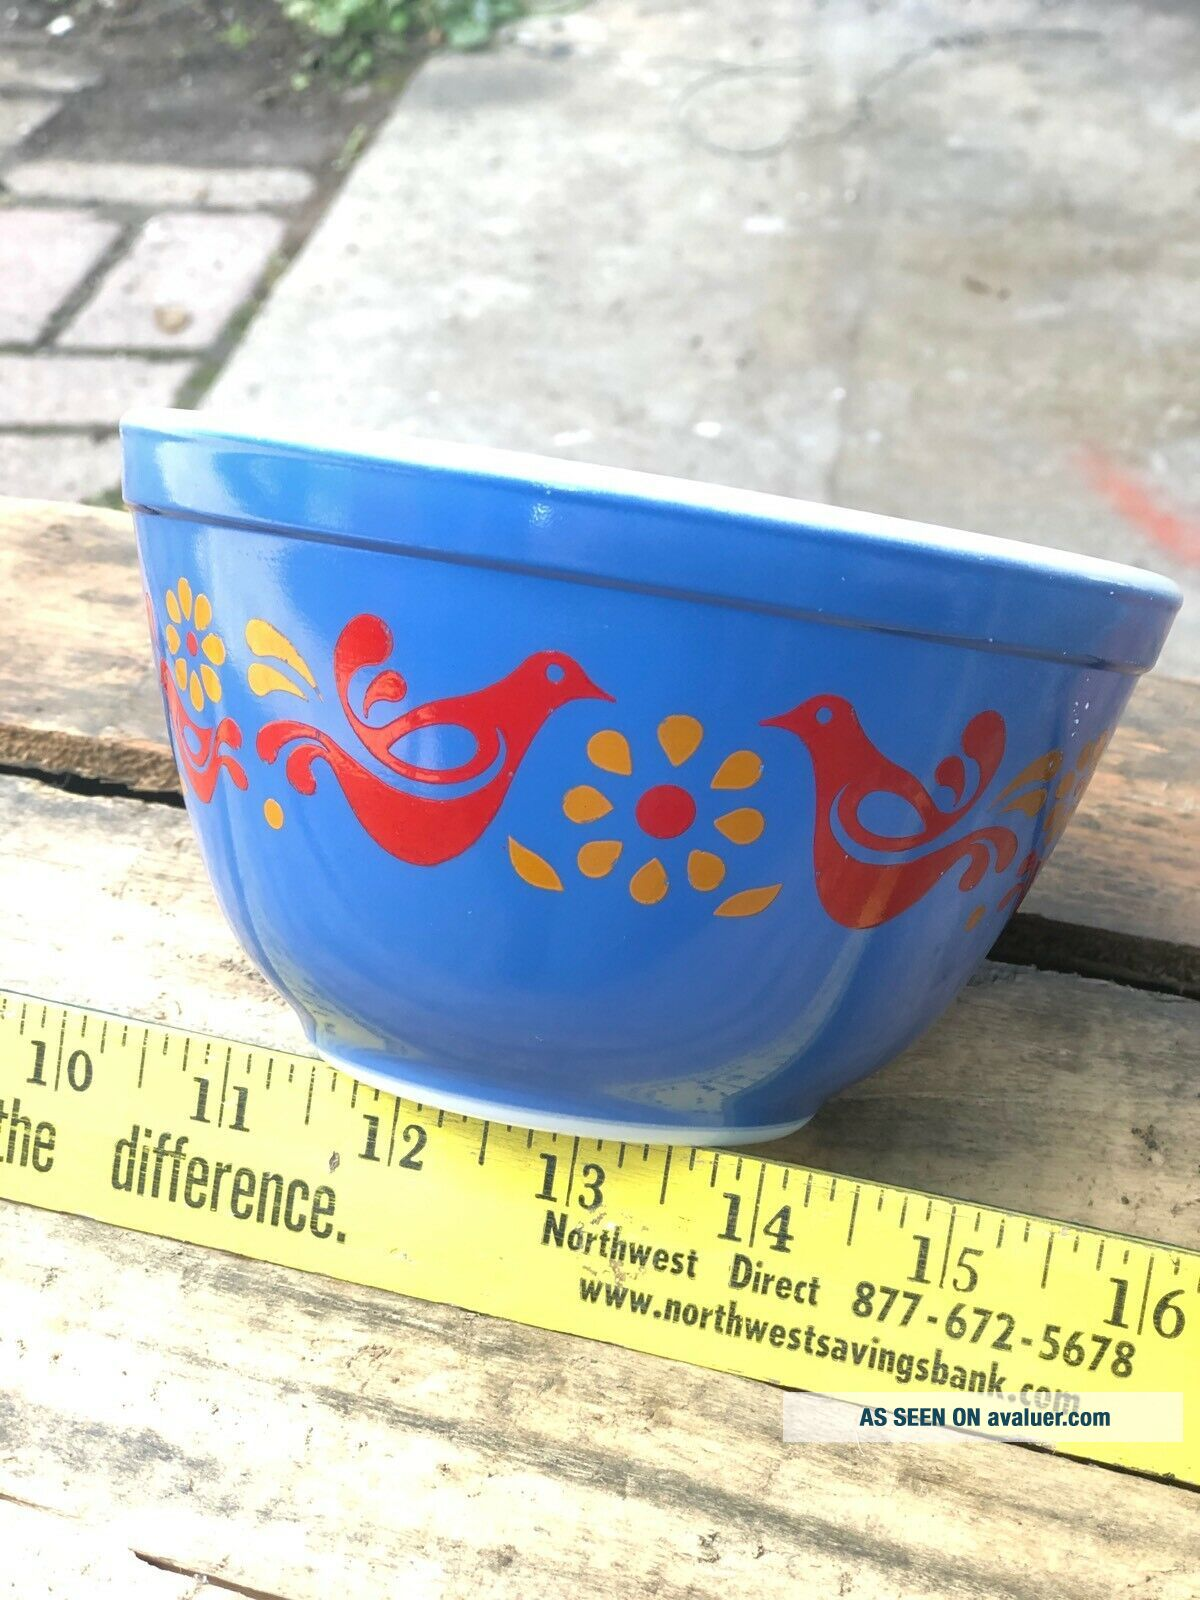 Rare Vintage Pyrex Friendship Mixing Bowl BLUE 401 1.  5 Pint Error Piece Promo